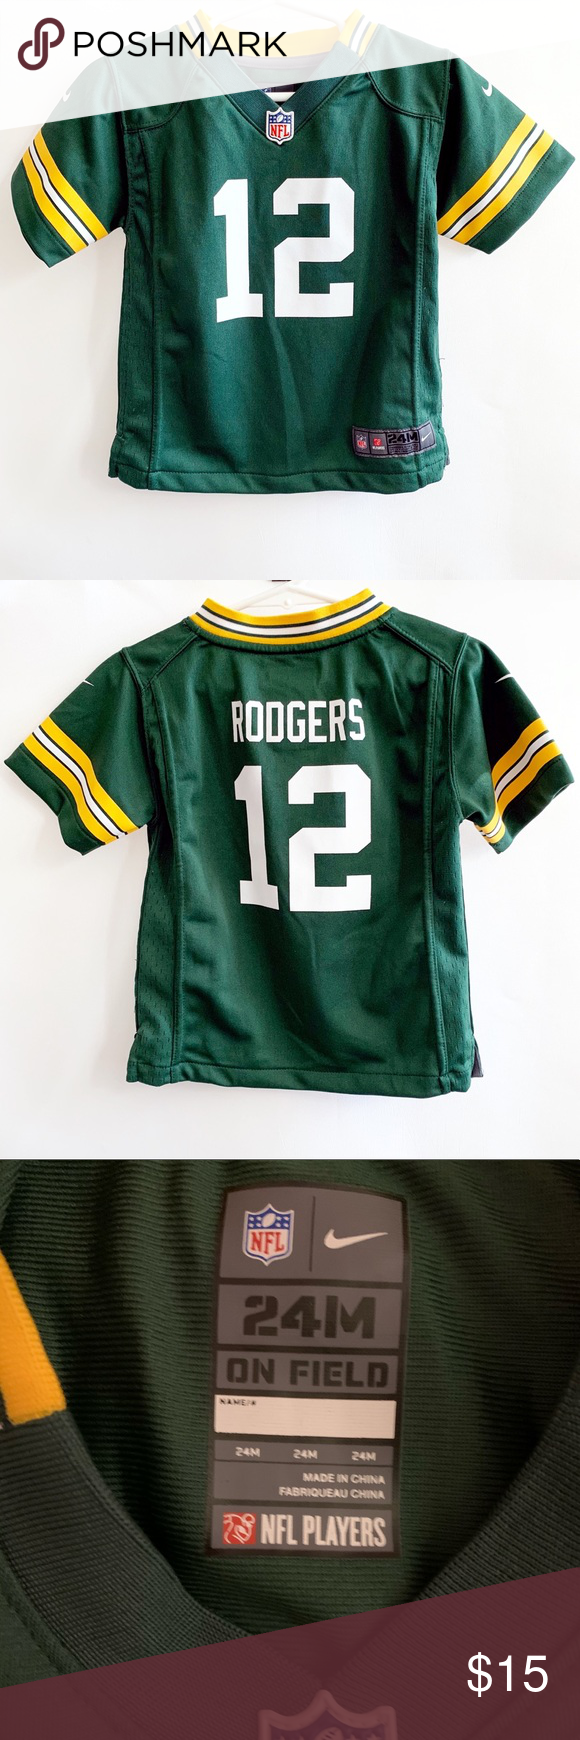 Aaron Rodgers Green Bay Packers 12 Jersey Baby Rodgers Green Bay Green Bay Packers Aaron Rodgers